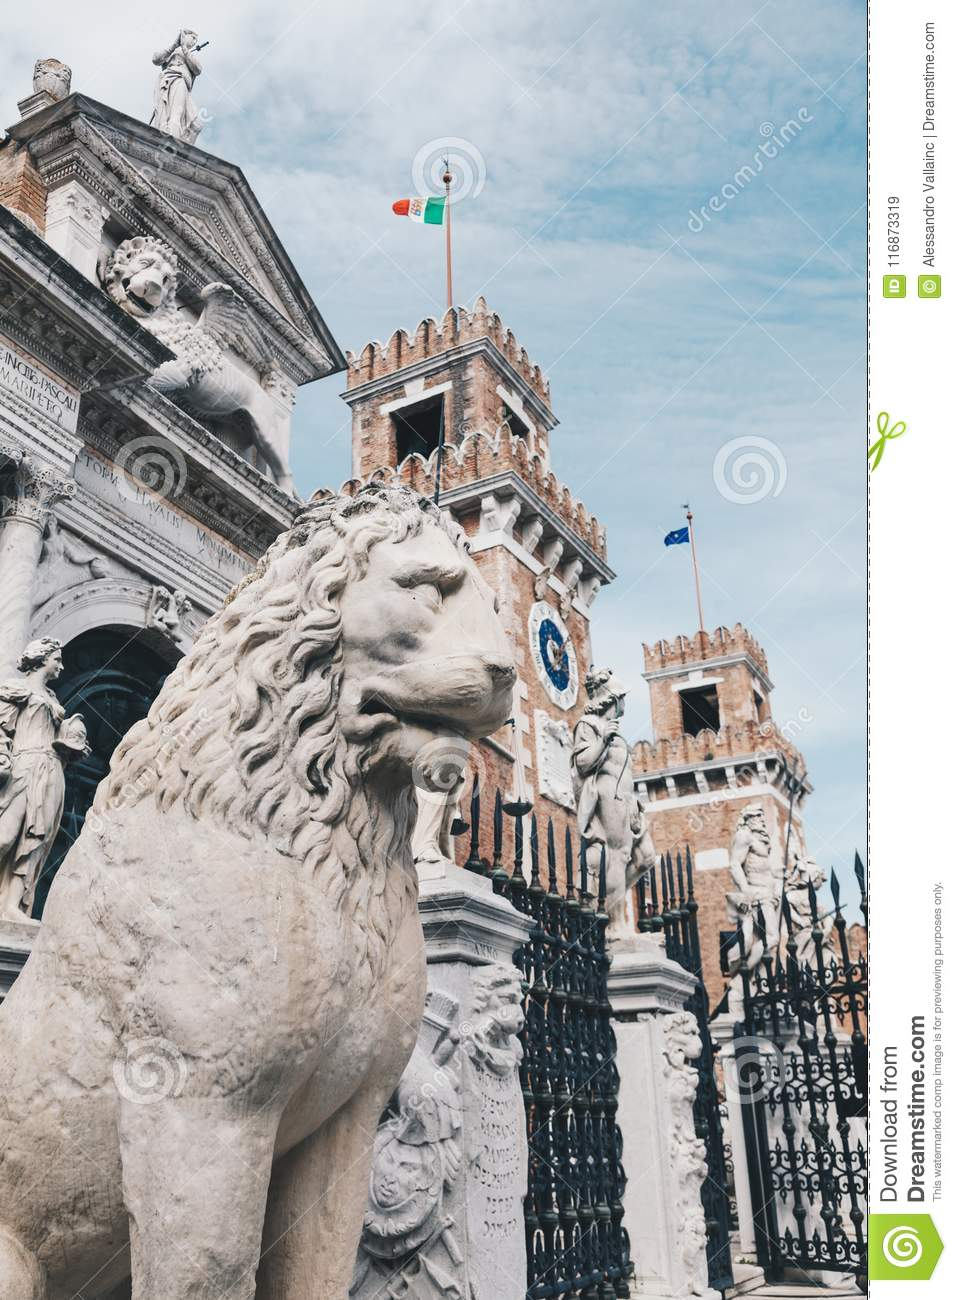 Stone Lion at the entrance of the Arsenal in Venice, Italy